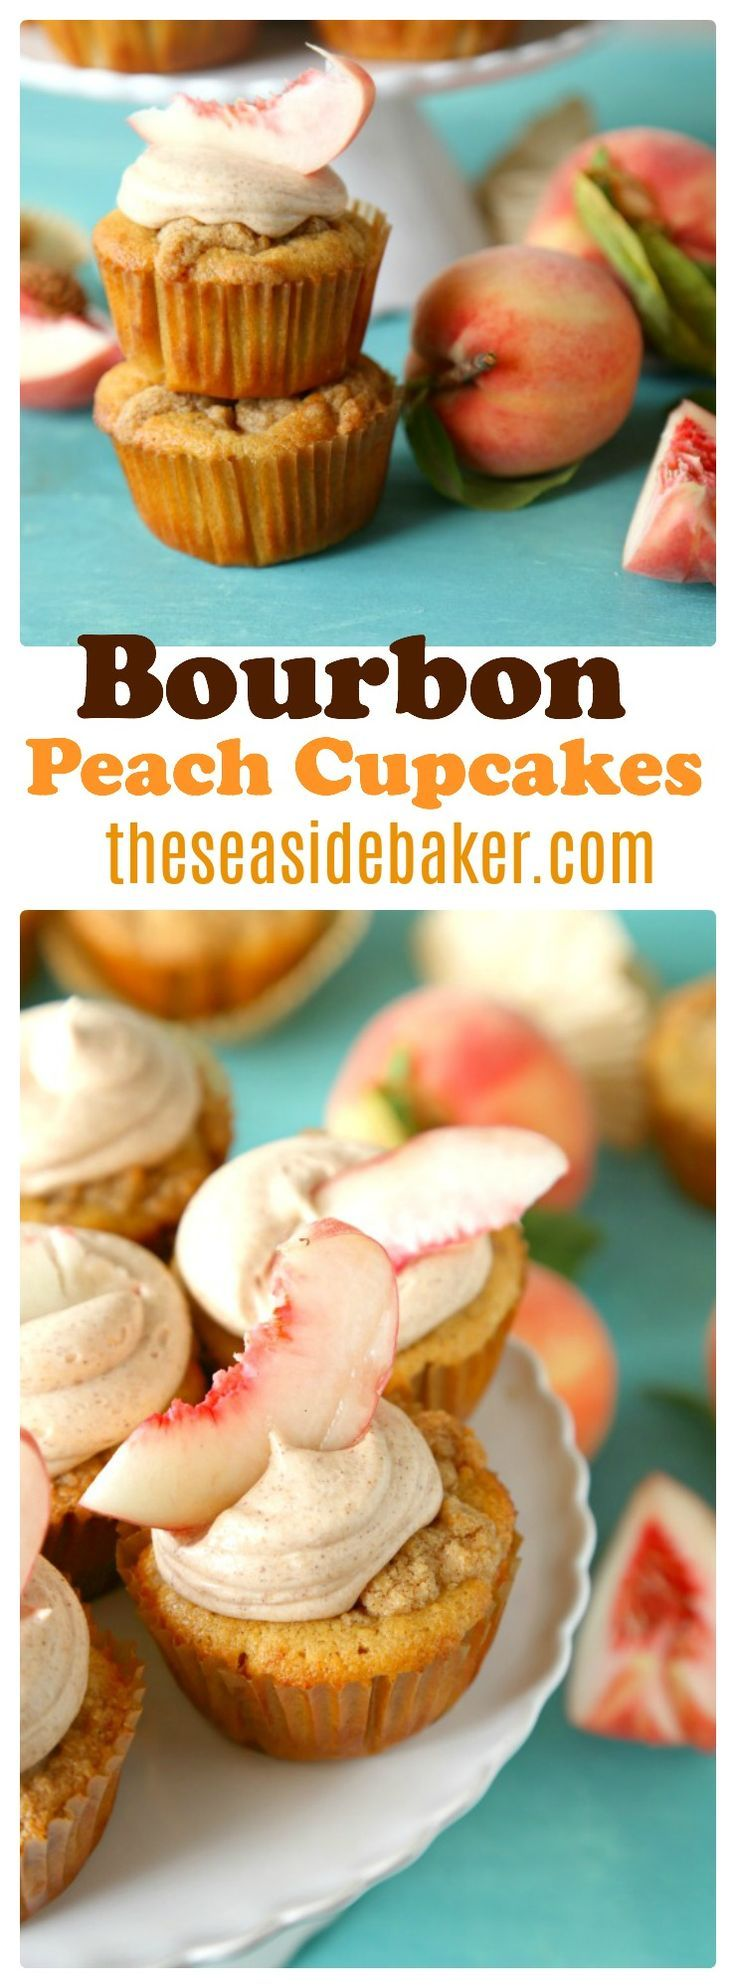 Cinnamon bourbon cupcakes with fresh peaches and a brown sugar streusel topping. Topped with a sweet bourbon peach cinnamon frosting.